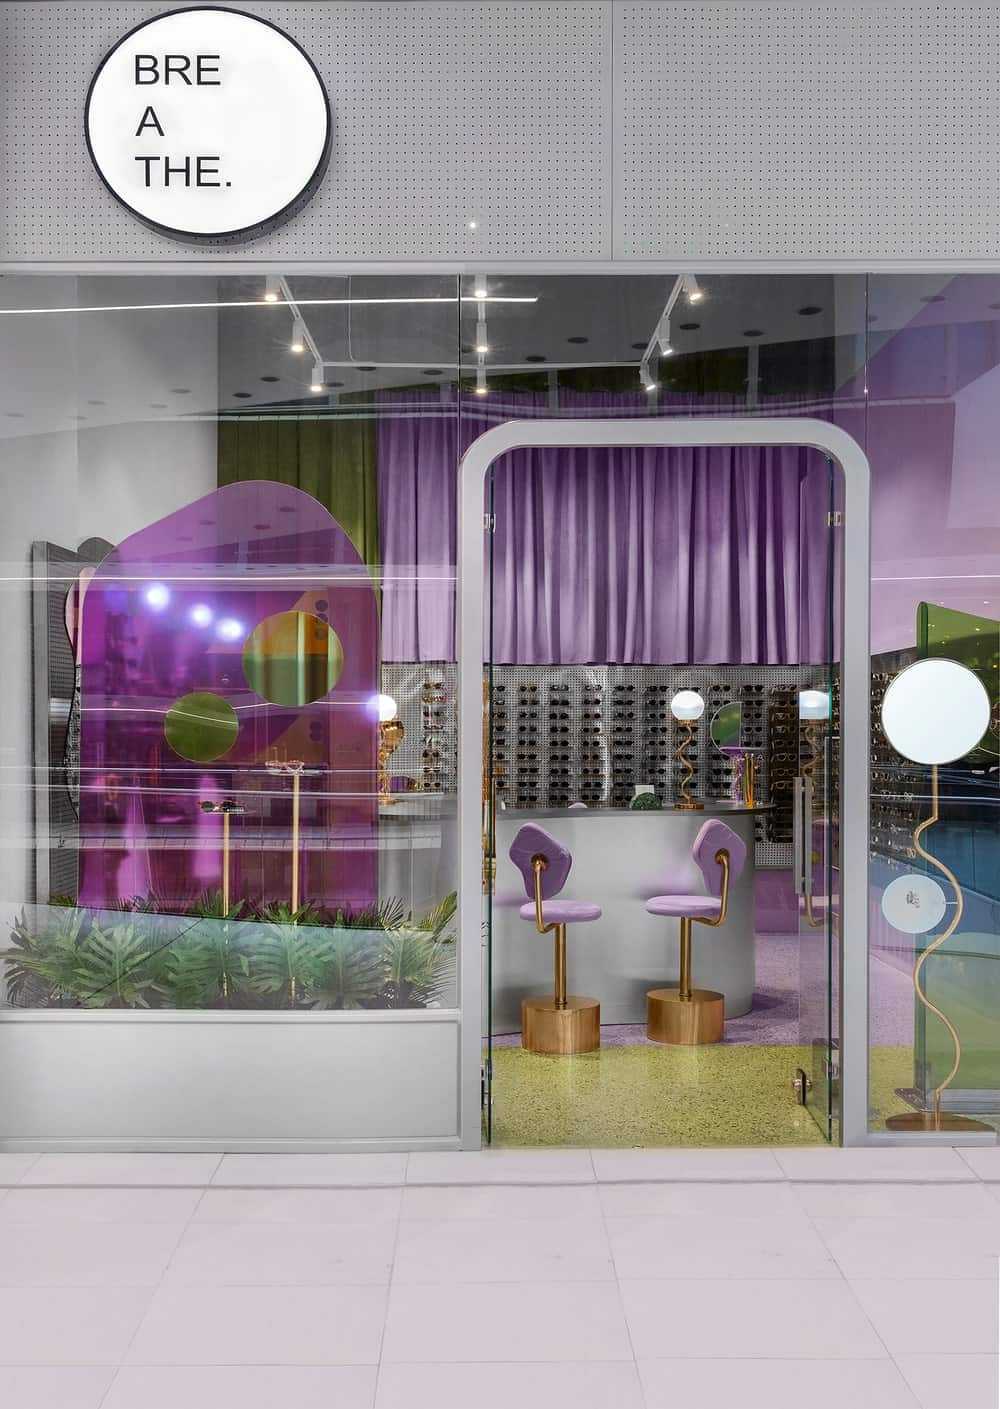 This is a view of the whole shop from outside showcasing more of the glass walls and the brilliants colors of the interiors.